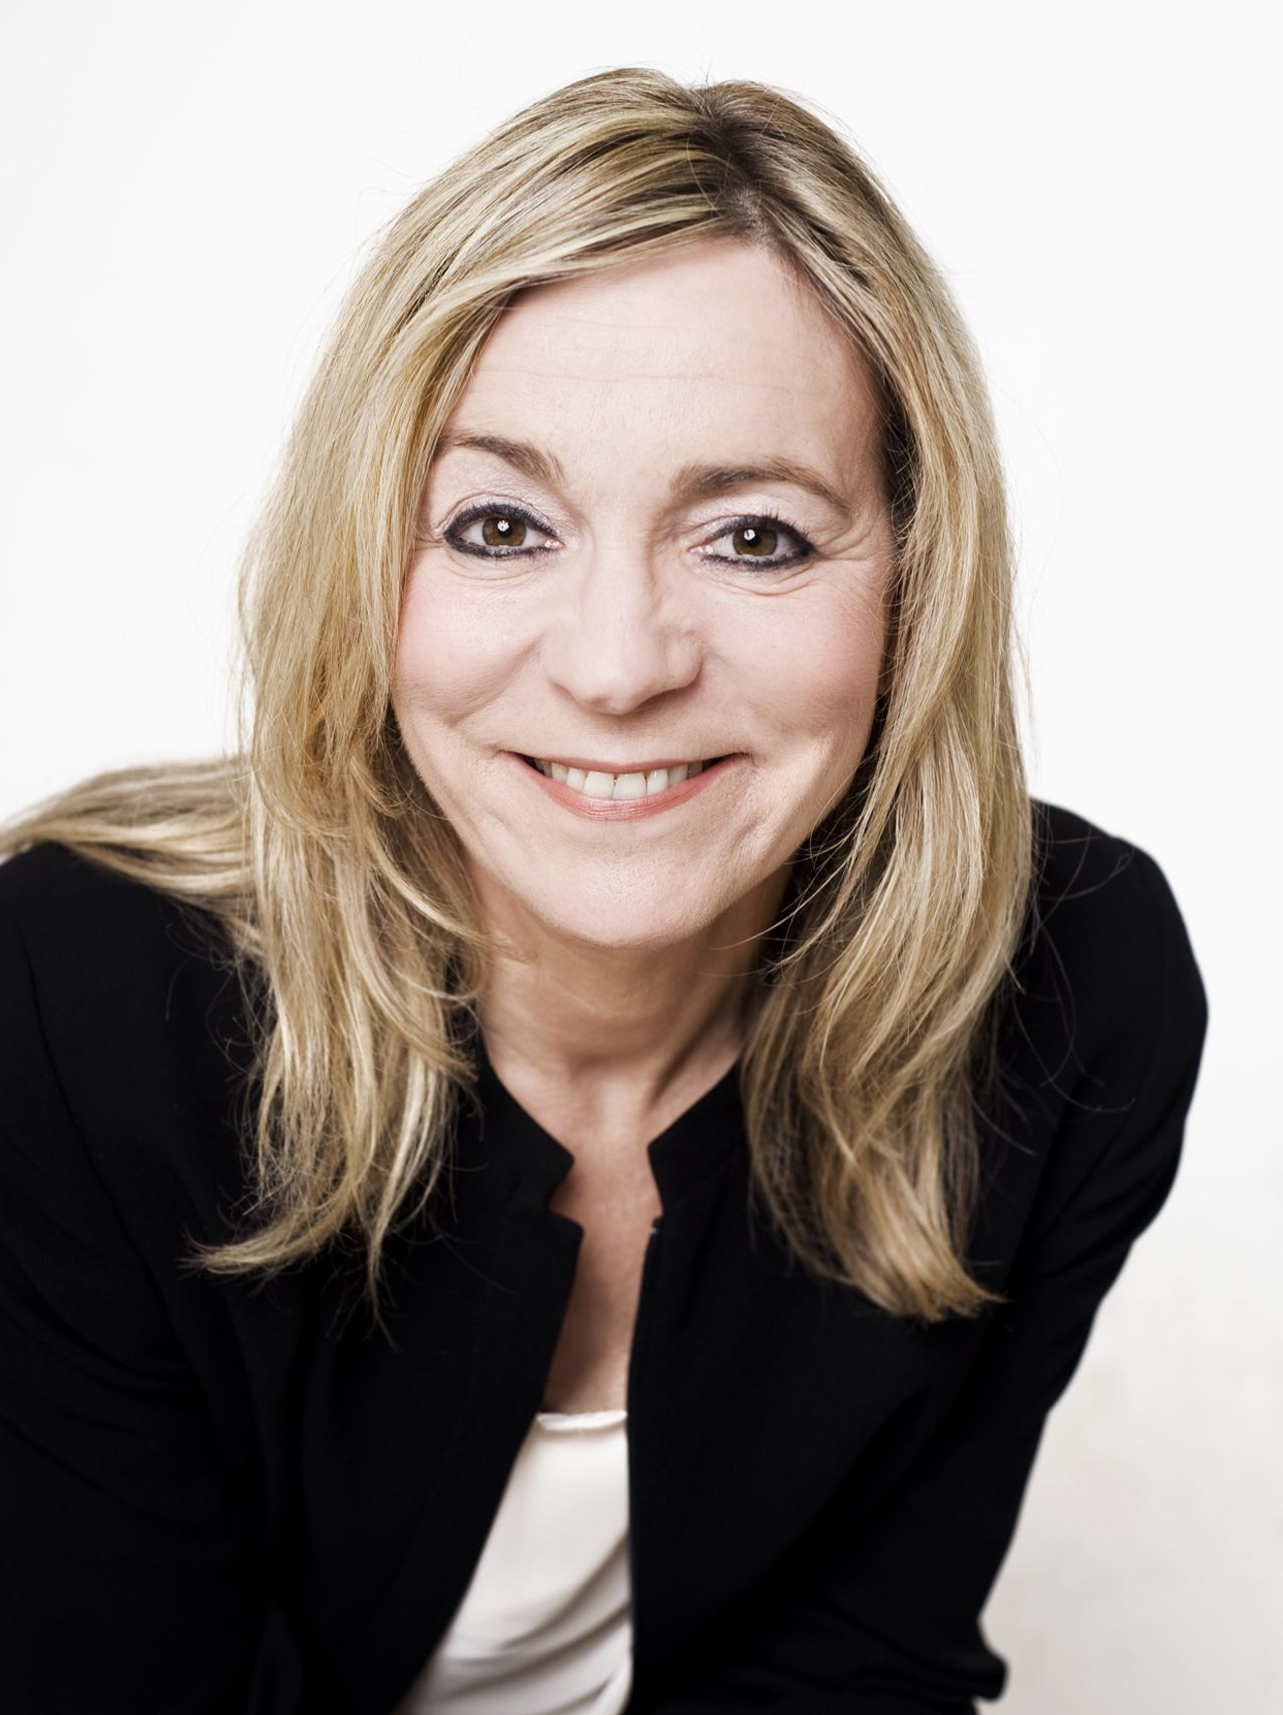 Sonja Heinen, Managing Director European Film Promotion